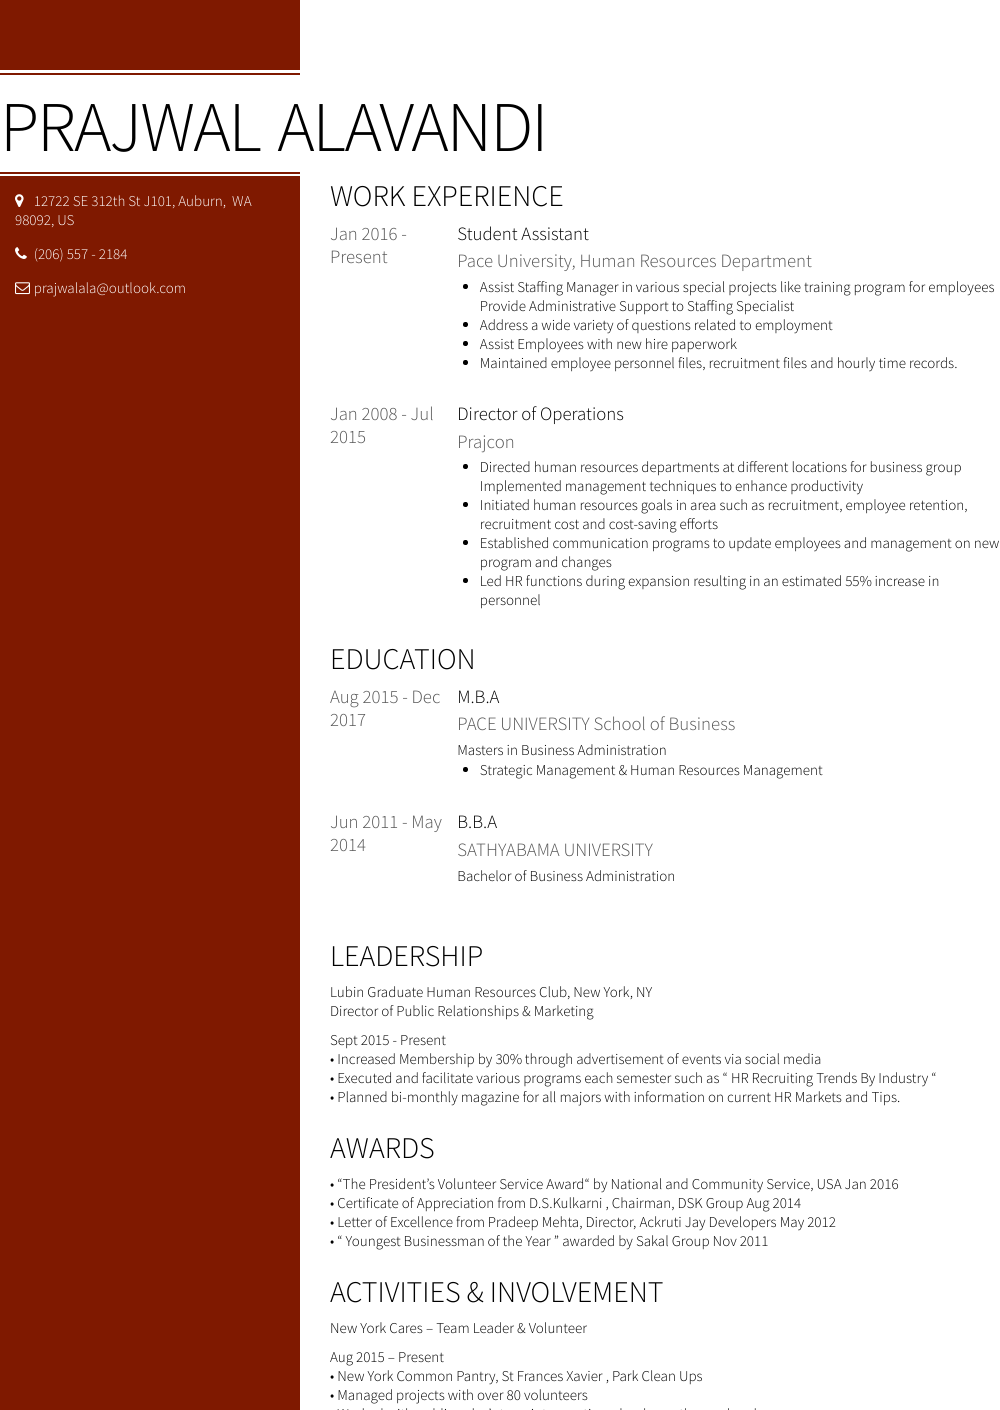 Student Assistant  Resume Samples  Templates  VisualCV